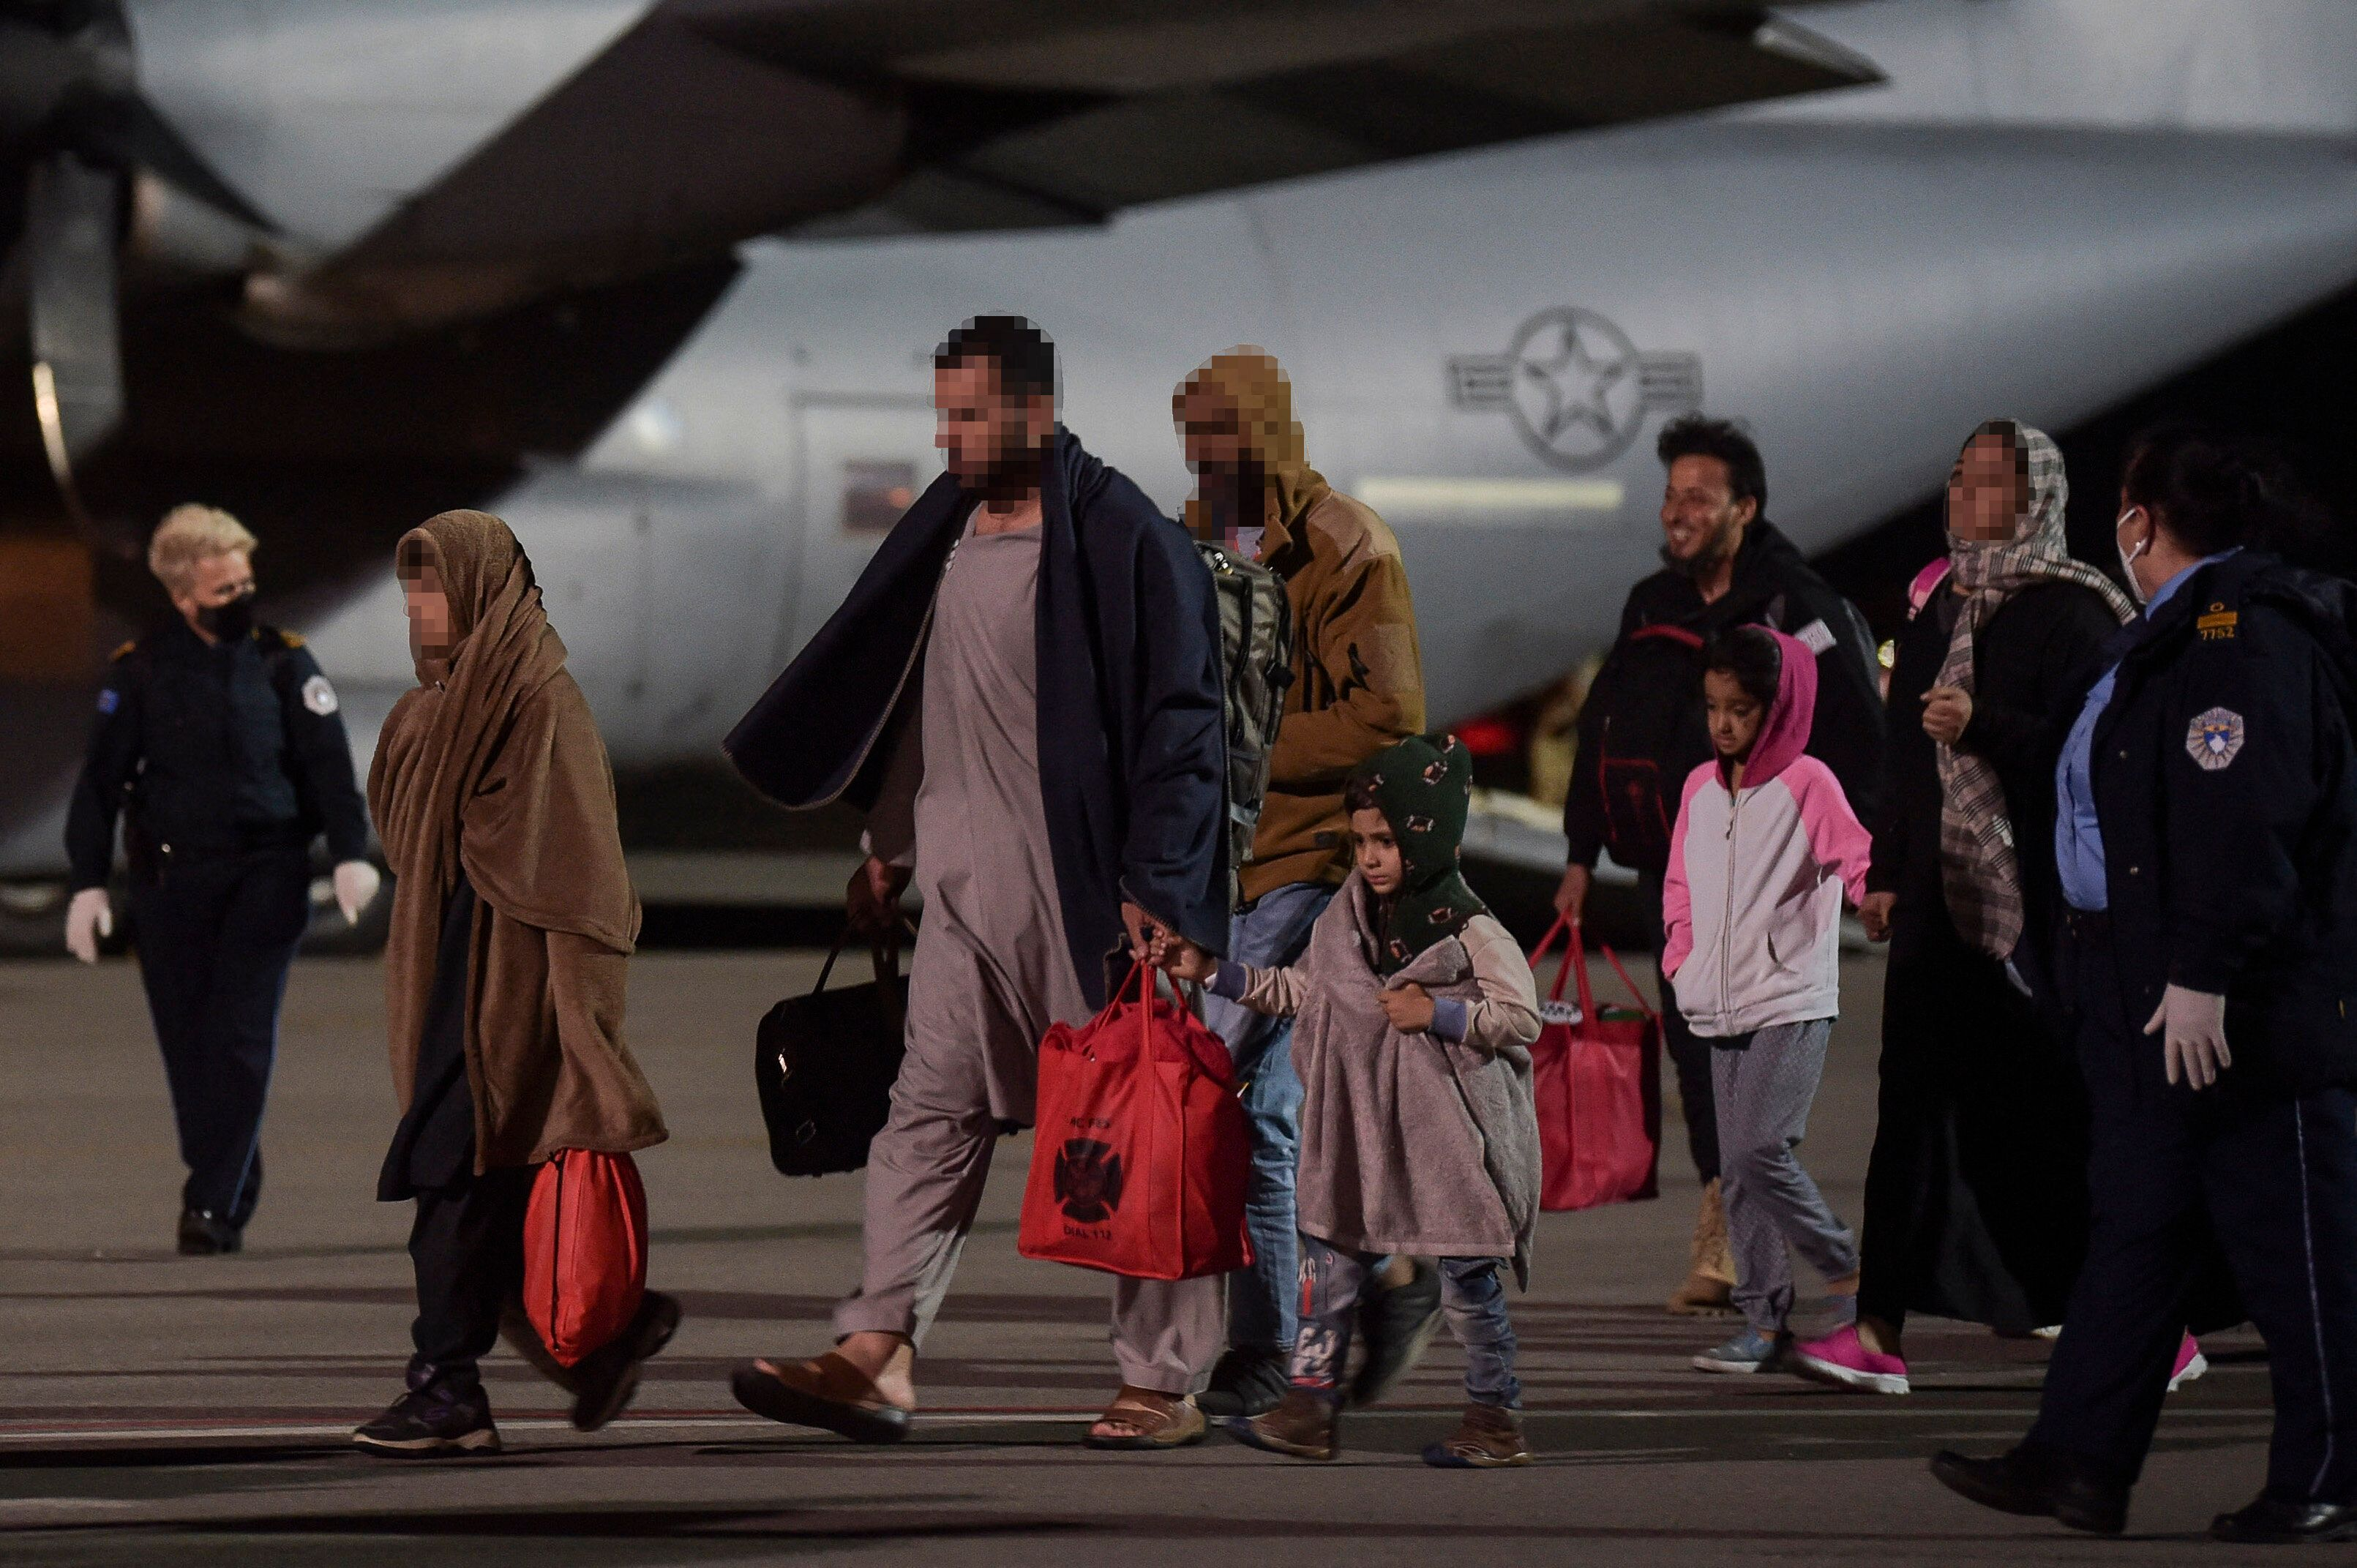 Afghan refugees exit a U.S. Air Force plane at Pristina International airport near Pristina, Kosovo, on Aug. 29, 2021.